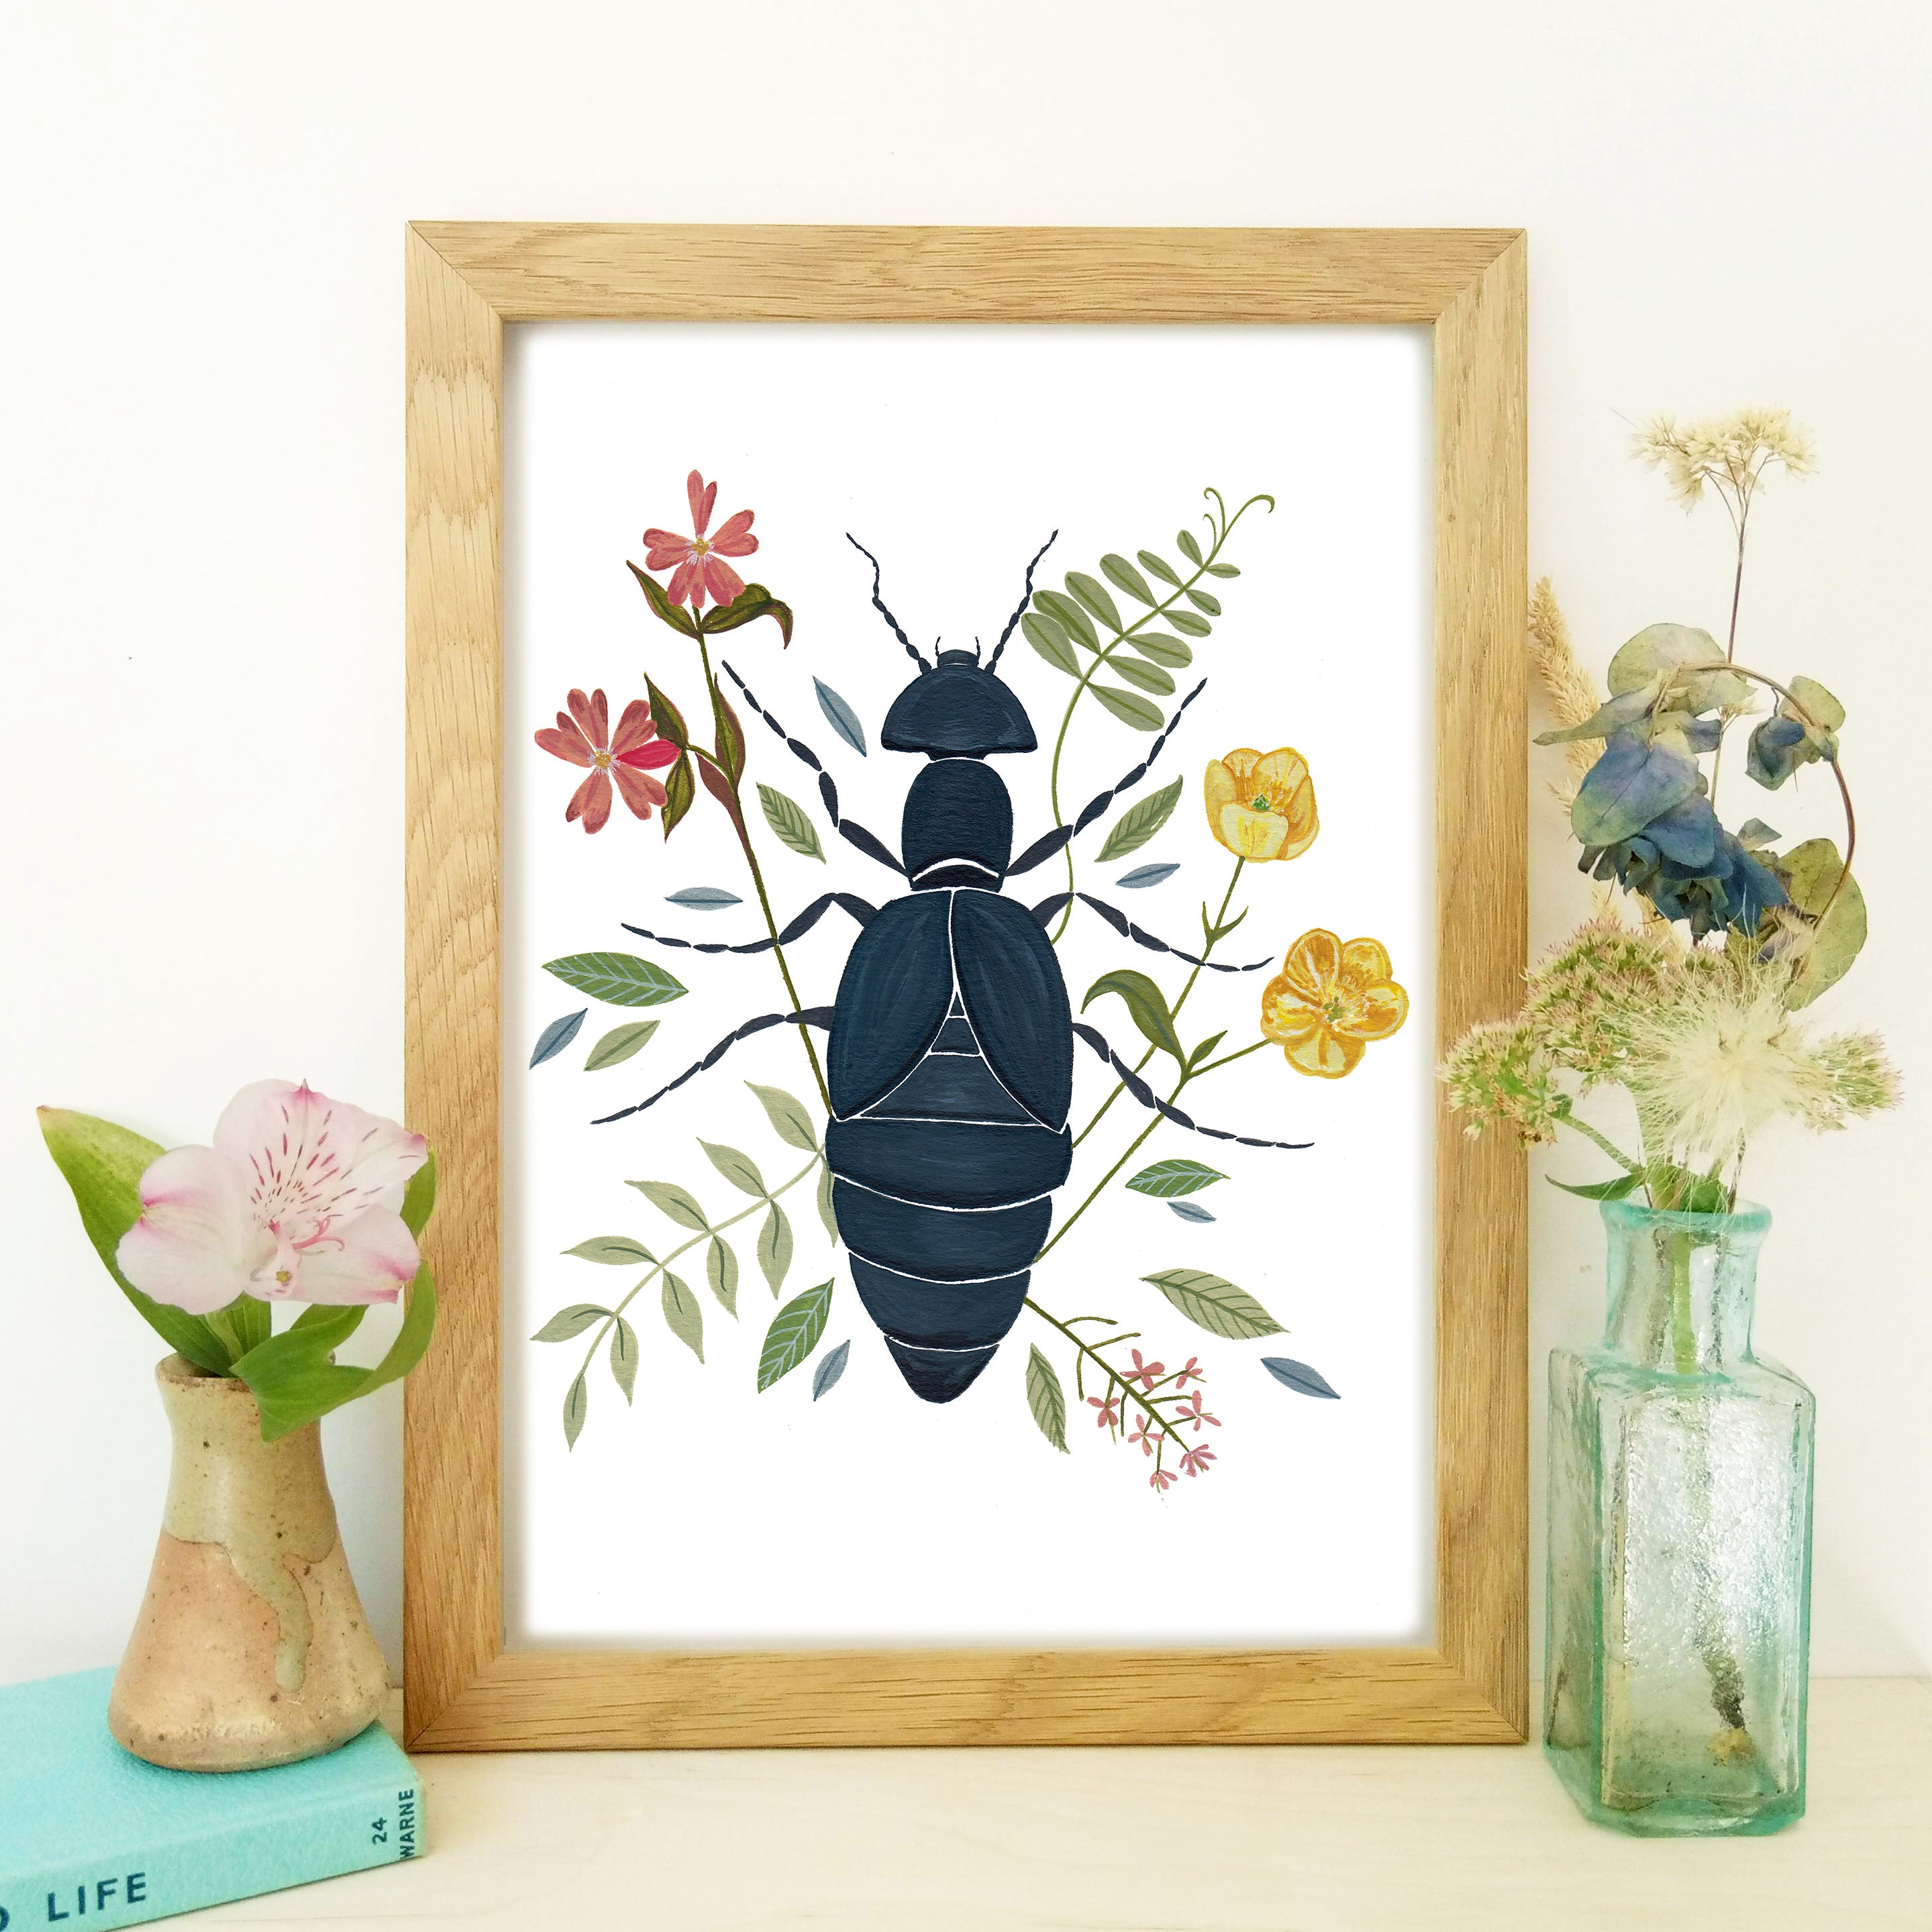 'Botanical Beetle' Fine Art Print - END OF LINE